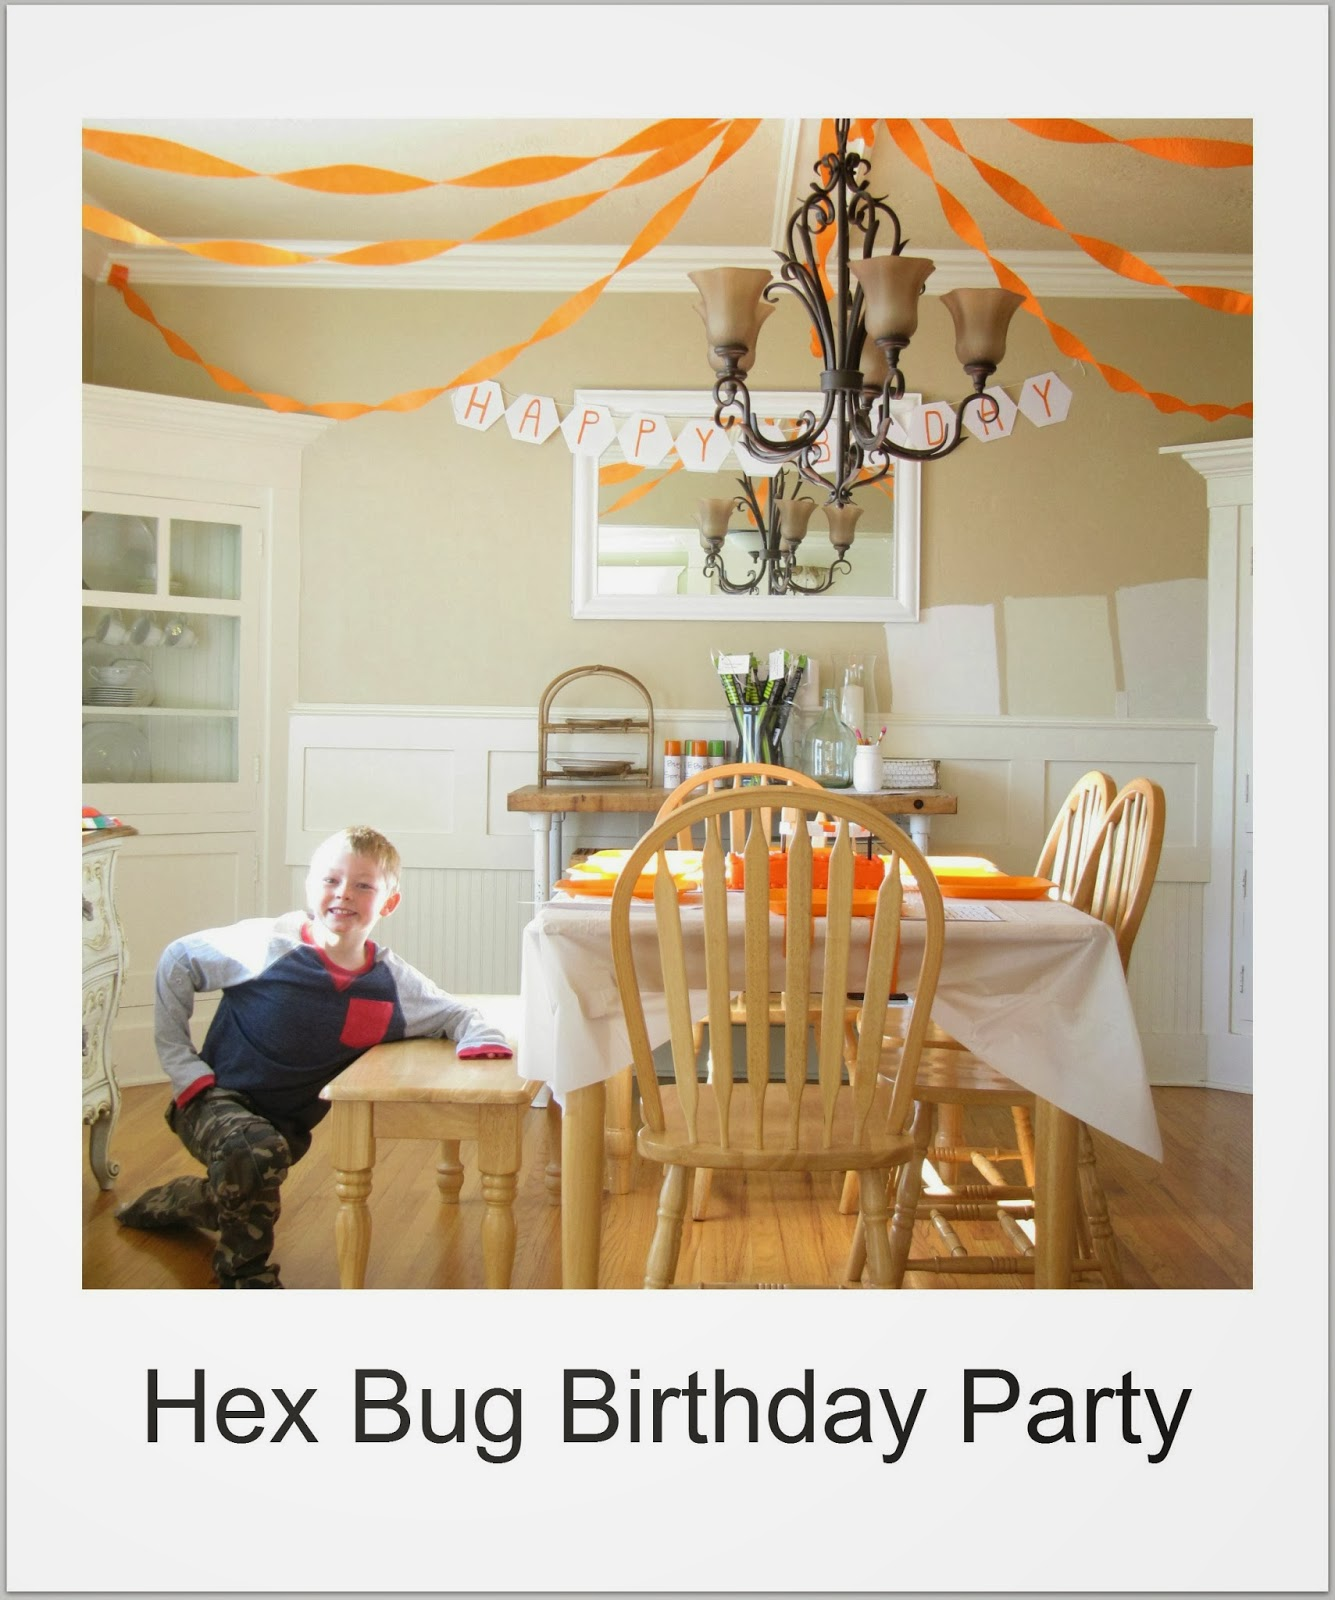 http://thewickerhouse.blogspot.com/2013/11/hex-bug-party.html